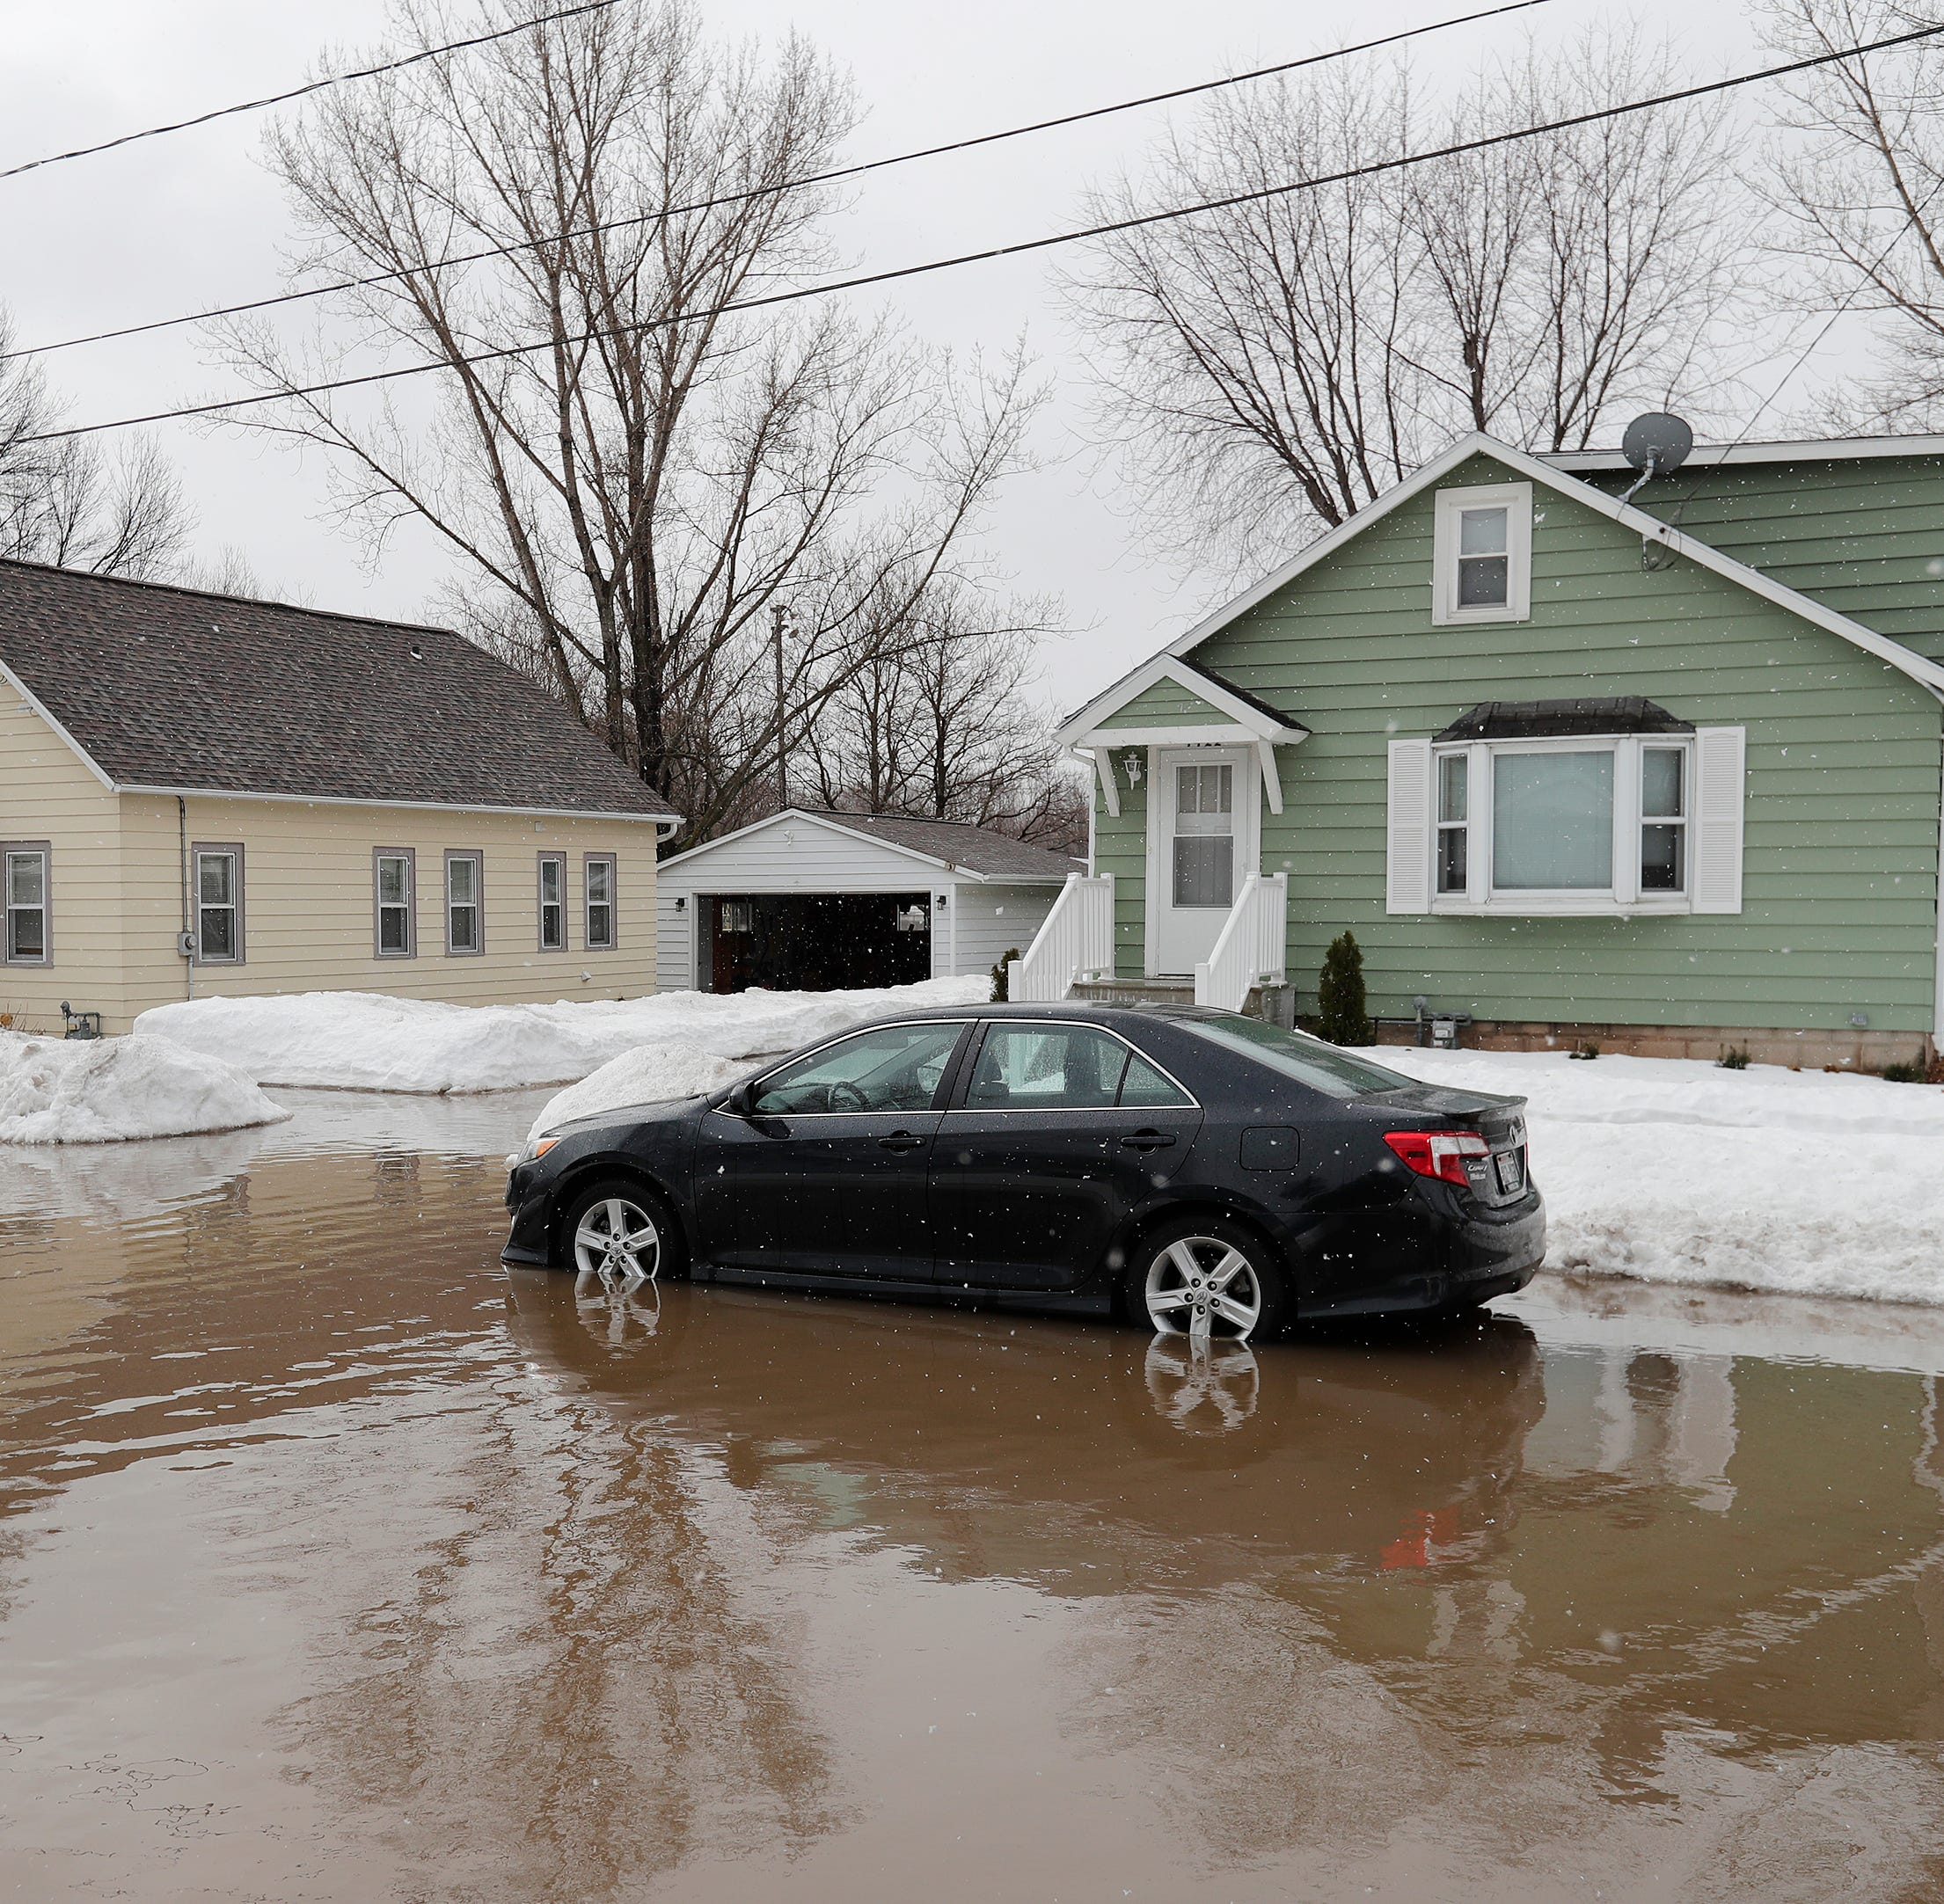 Flood damage: What to do for damage assessment, cleanup and insurance claims